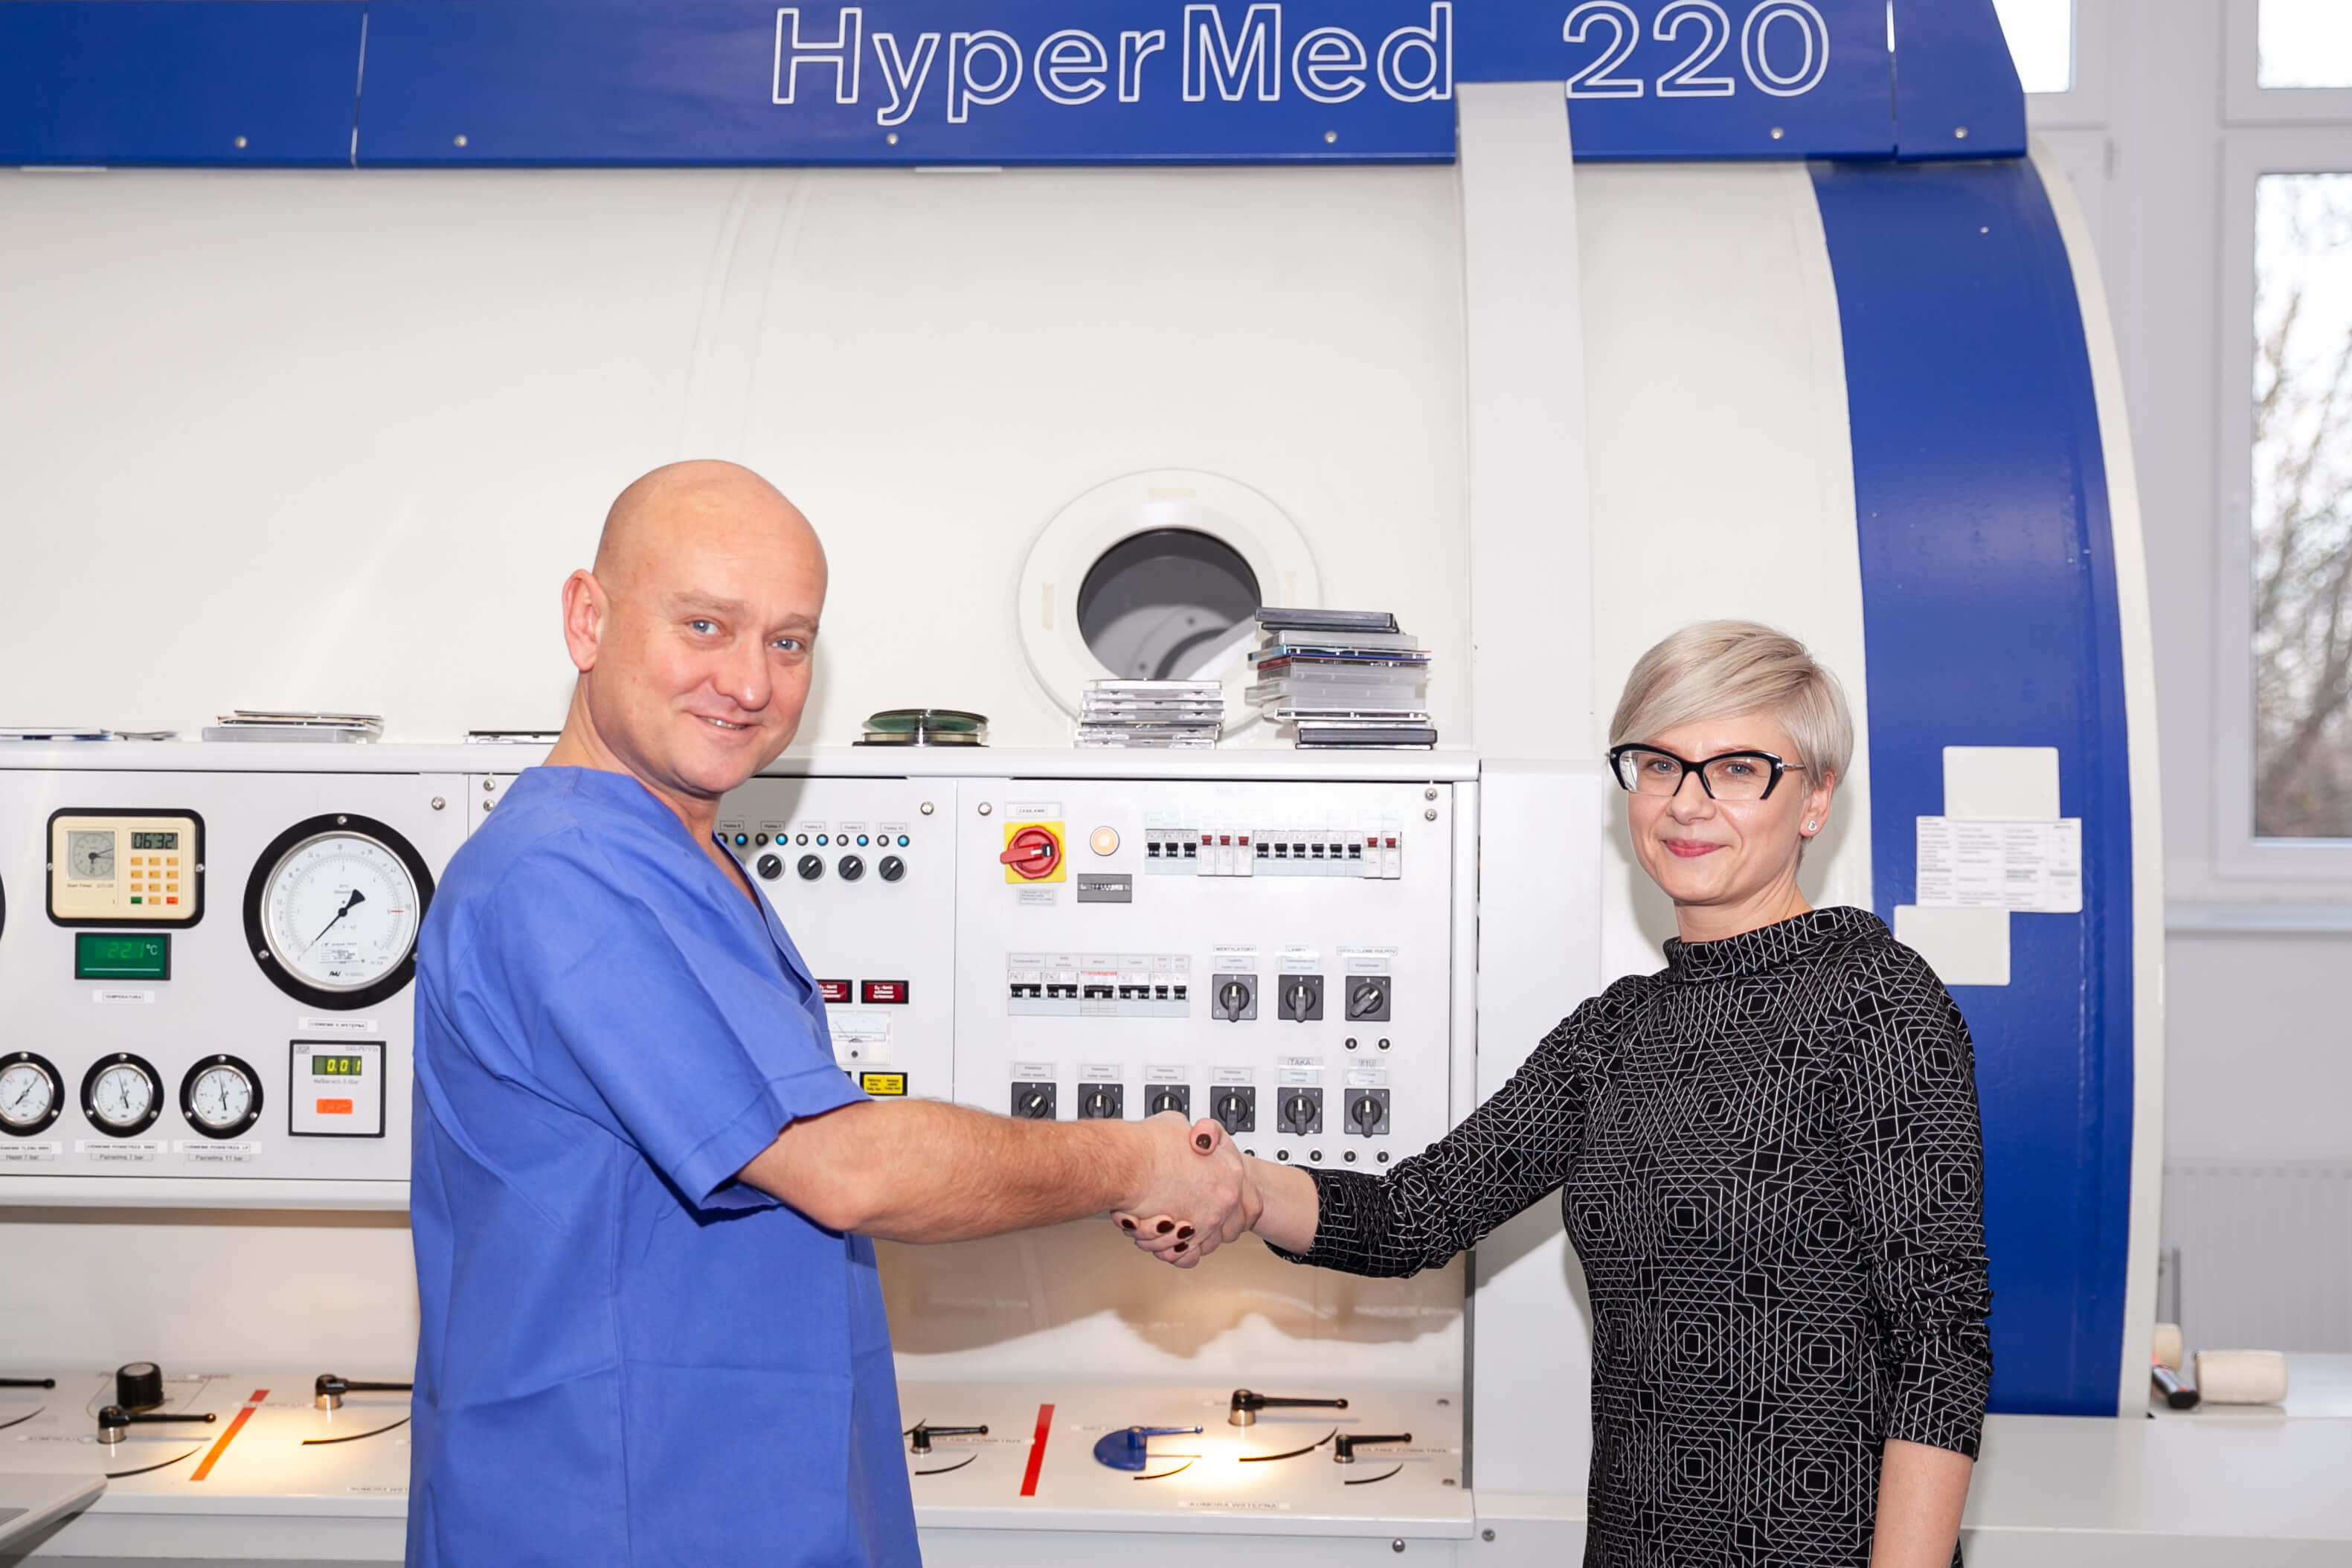 Centrum Hiperbarii Tlenowej i Leczenia Ran 16 1 - What can be the effects of hyperbaric oxygen therapy at the Hyperbaric Oxygen Therapy and Wound Healing Centre in Gdańsk?